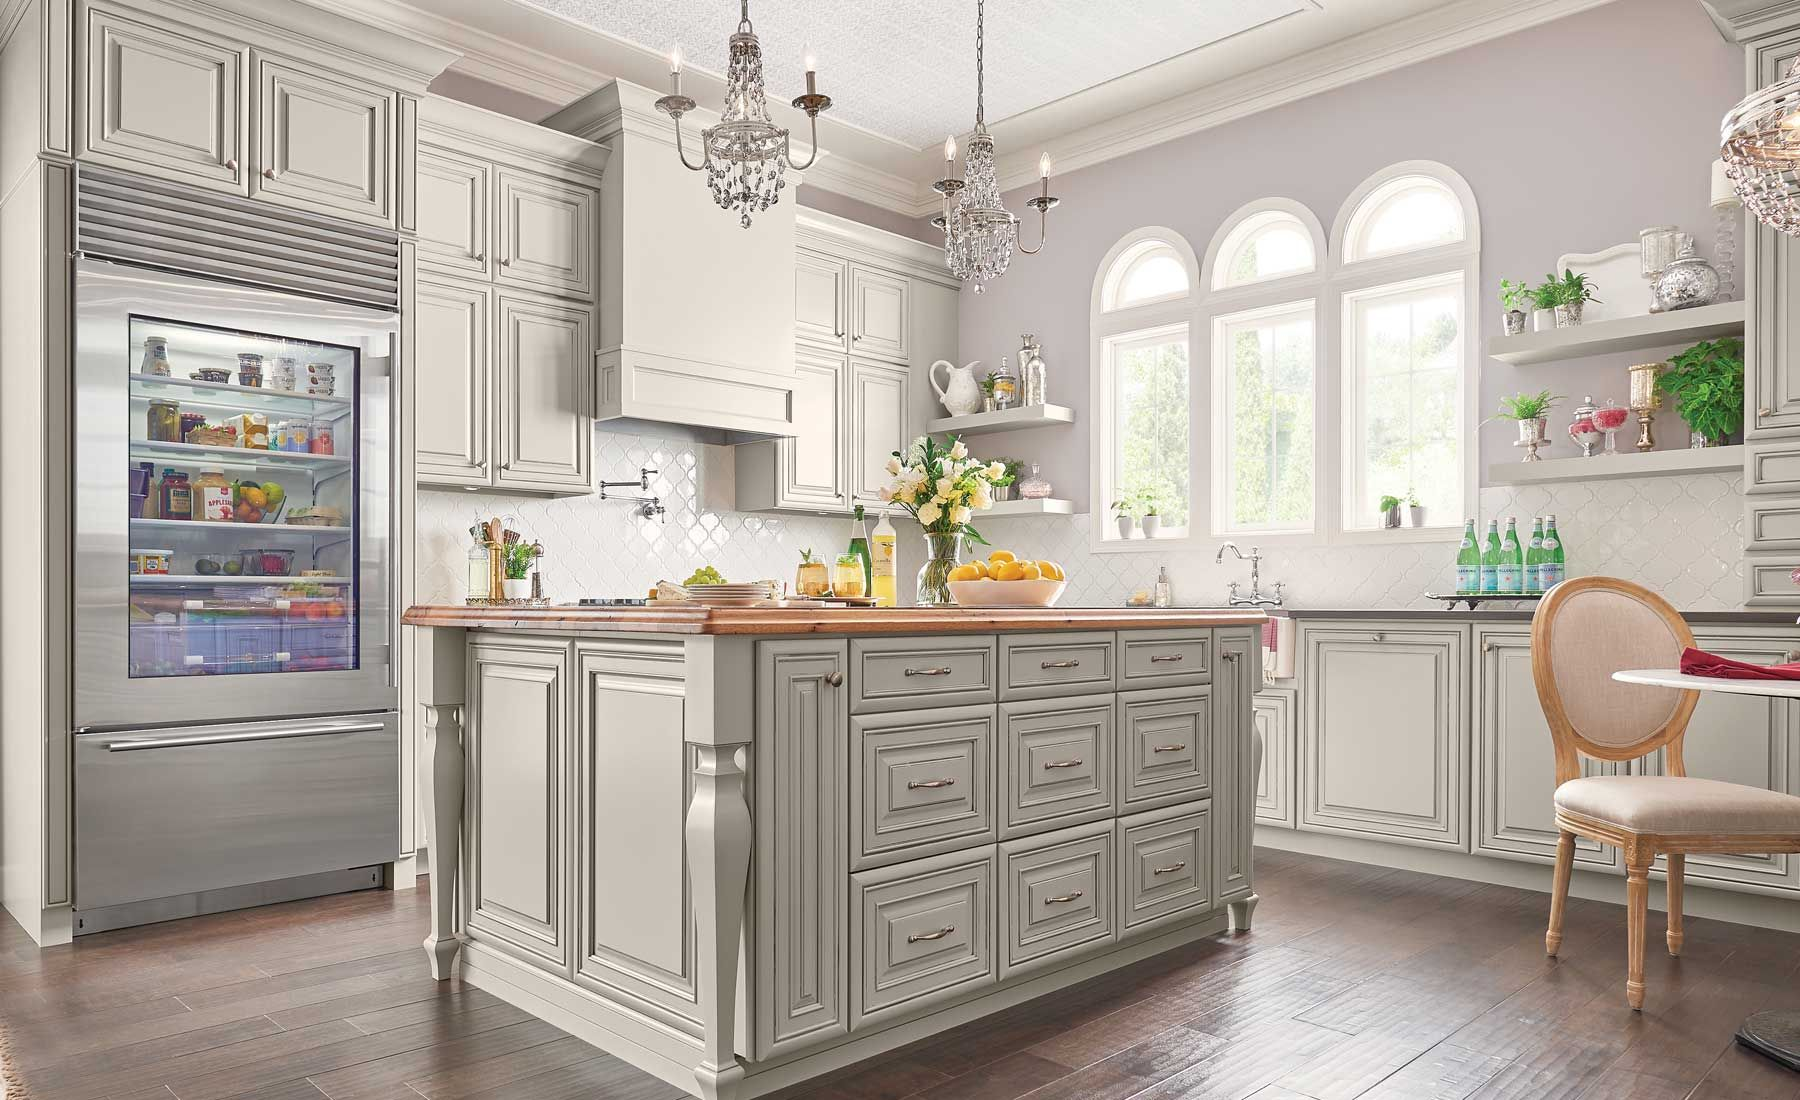 Our Kitchen Cabinet Showroom Located In Queens Ny Welcomes Homeowners Designers And Glazed Kitchen Cabinets Custom Kitchen Cabinets Kitchen Cabinets Showroom